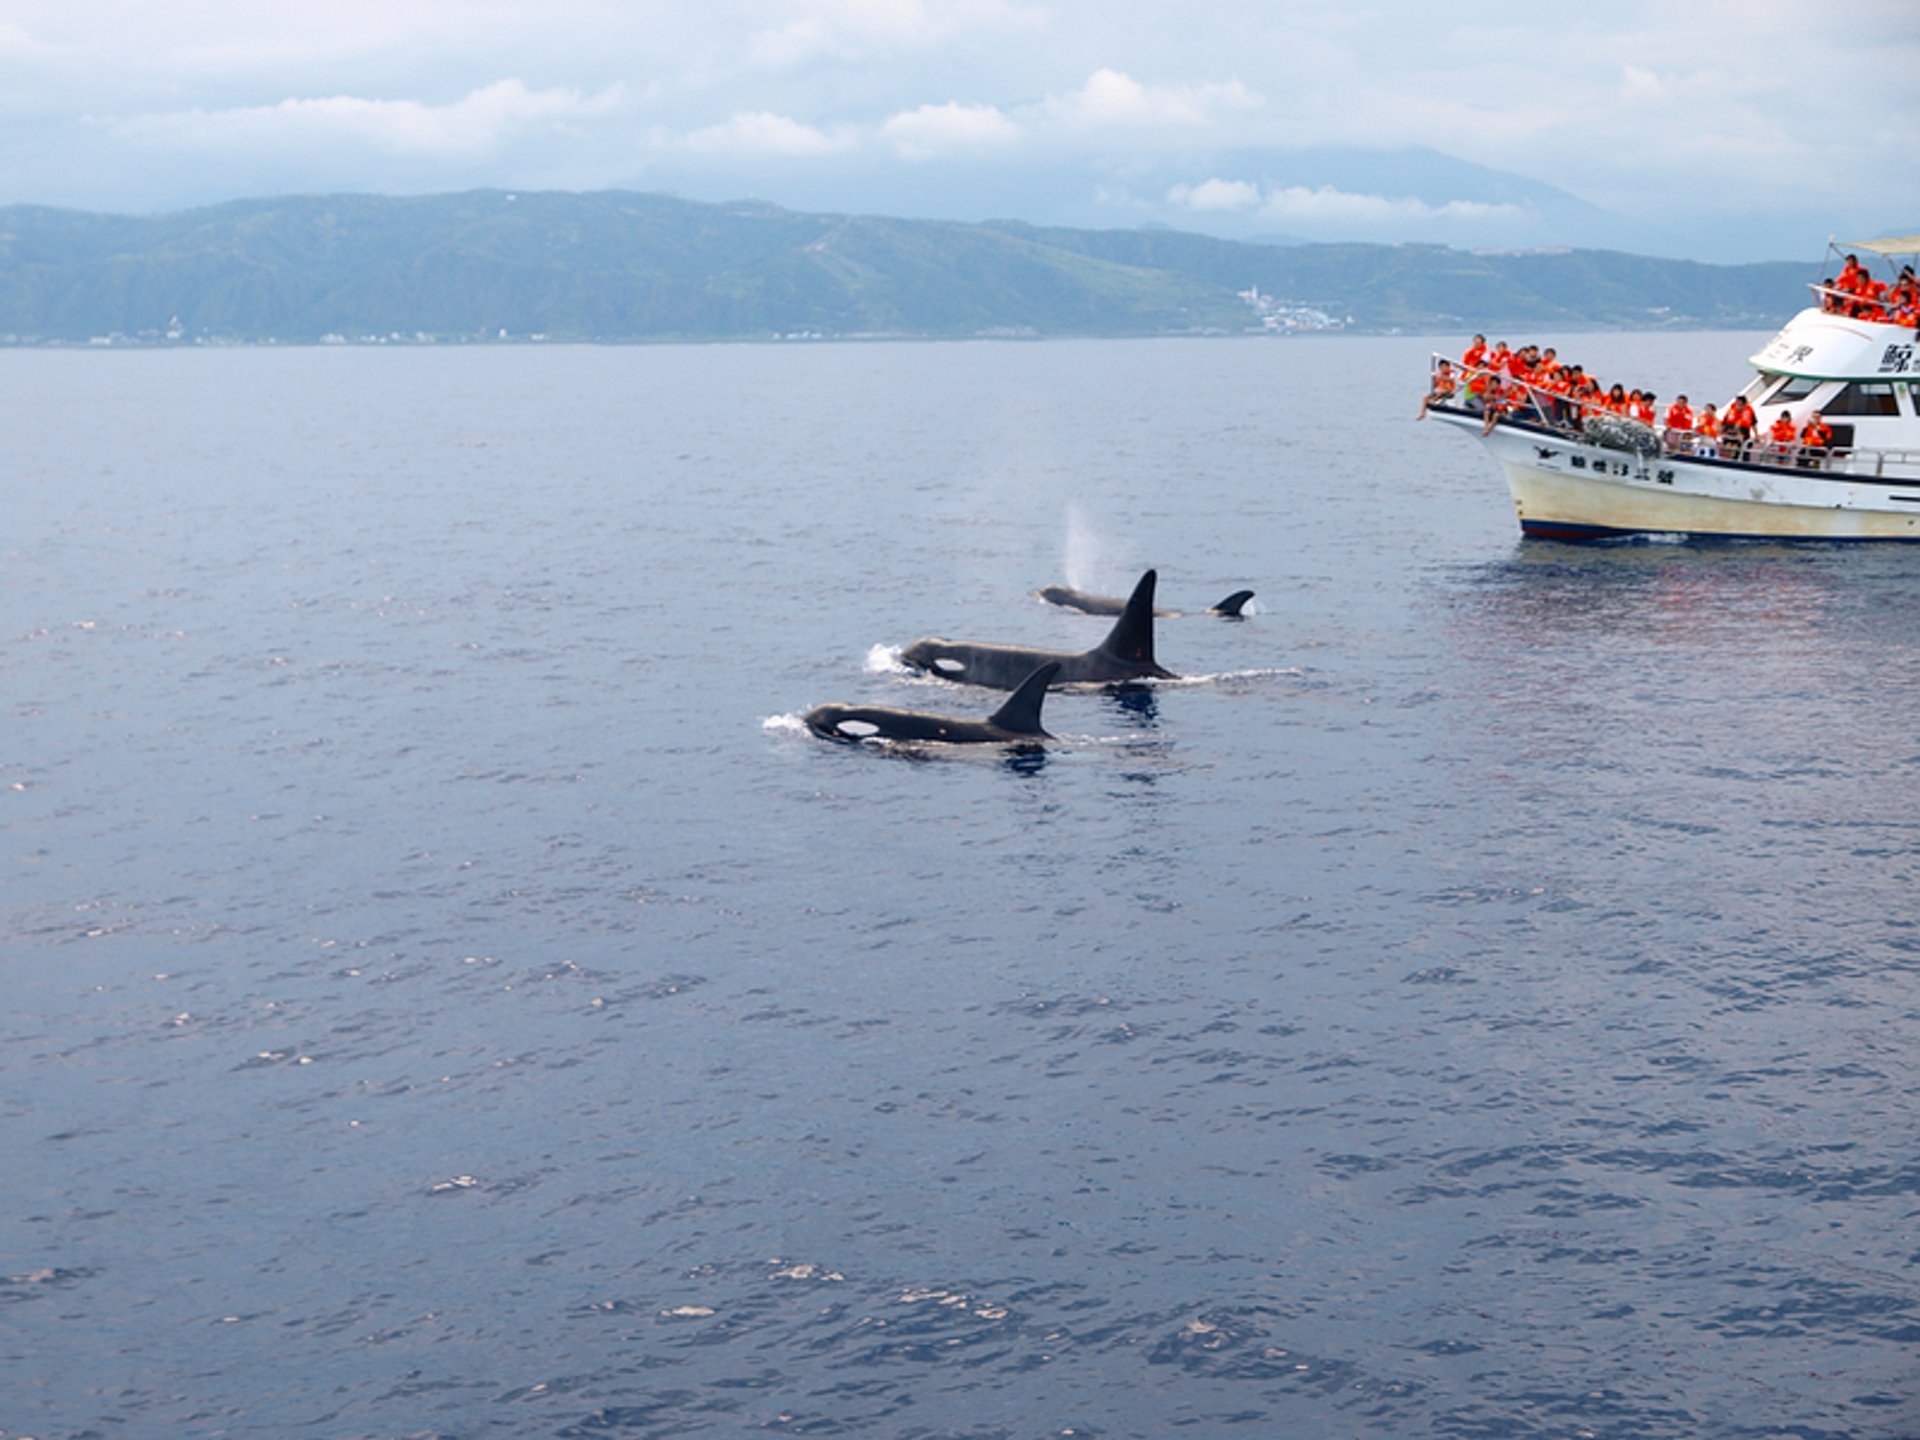 Dolphin and Whale Watching in Taiwan 2020 - Best Time